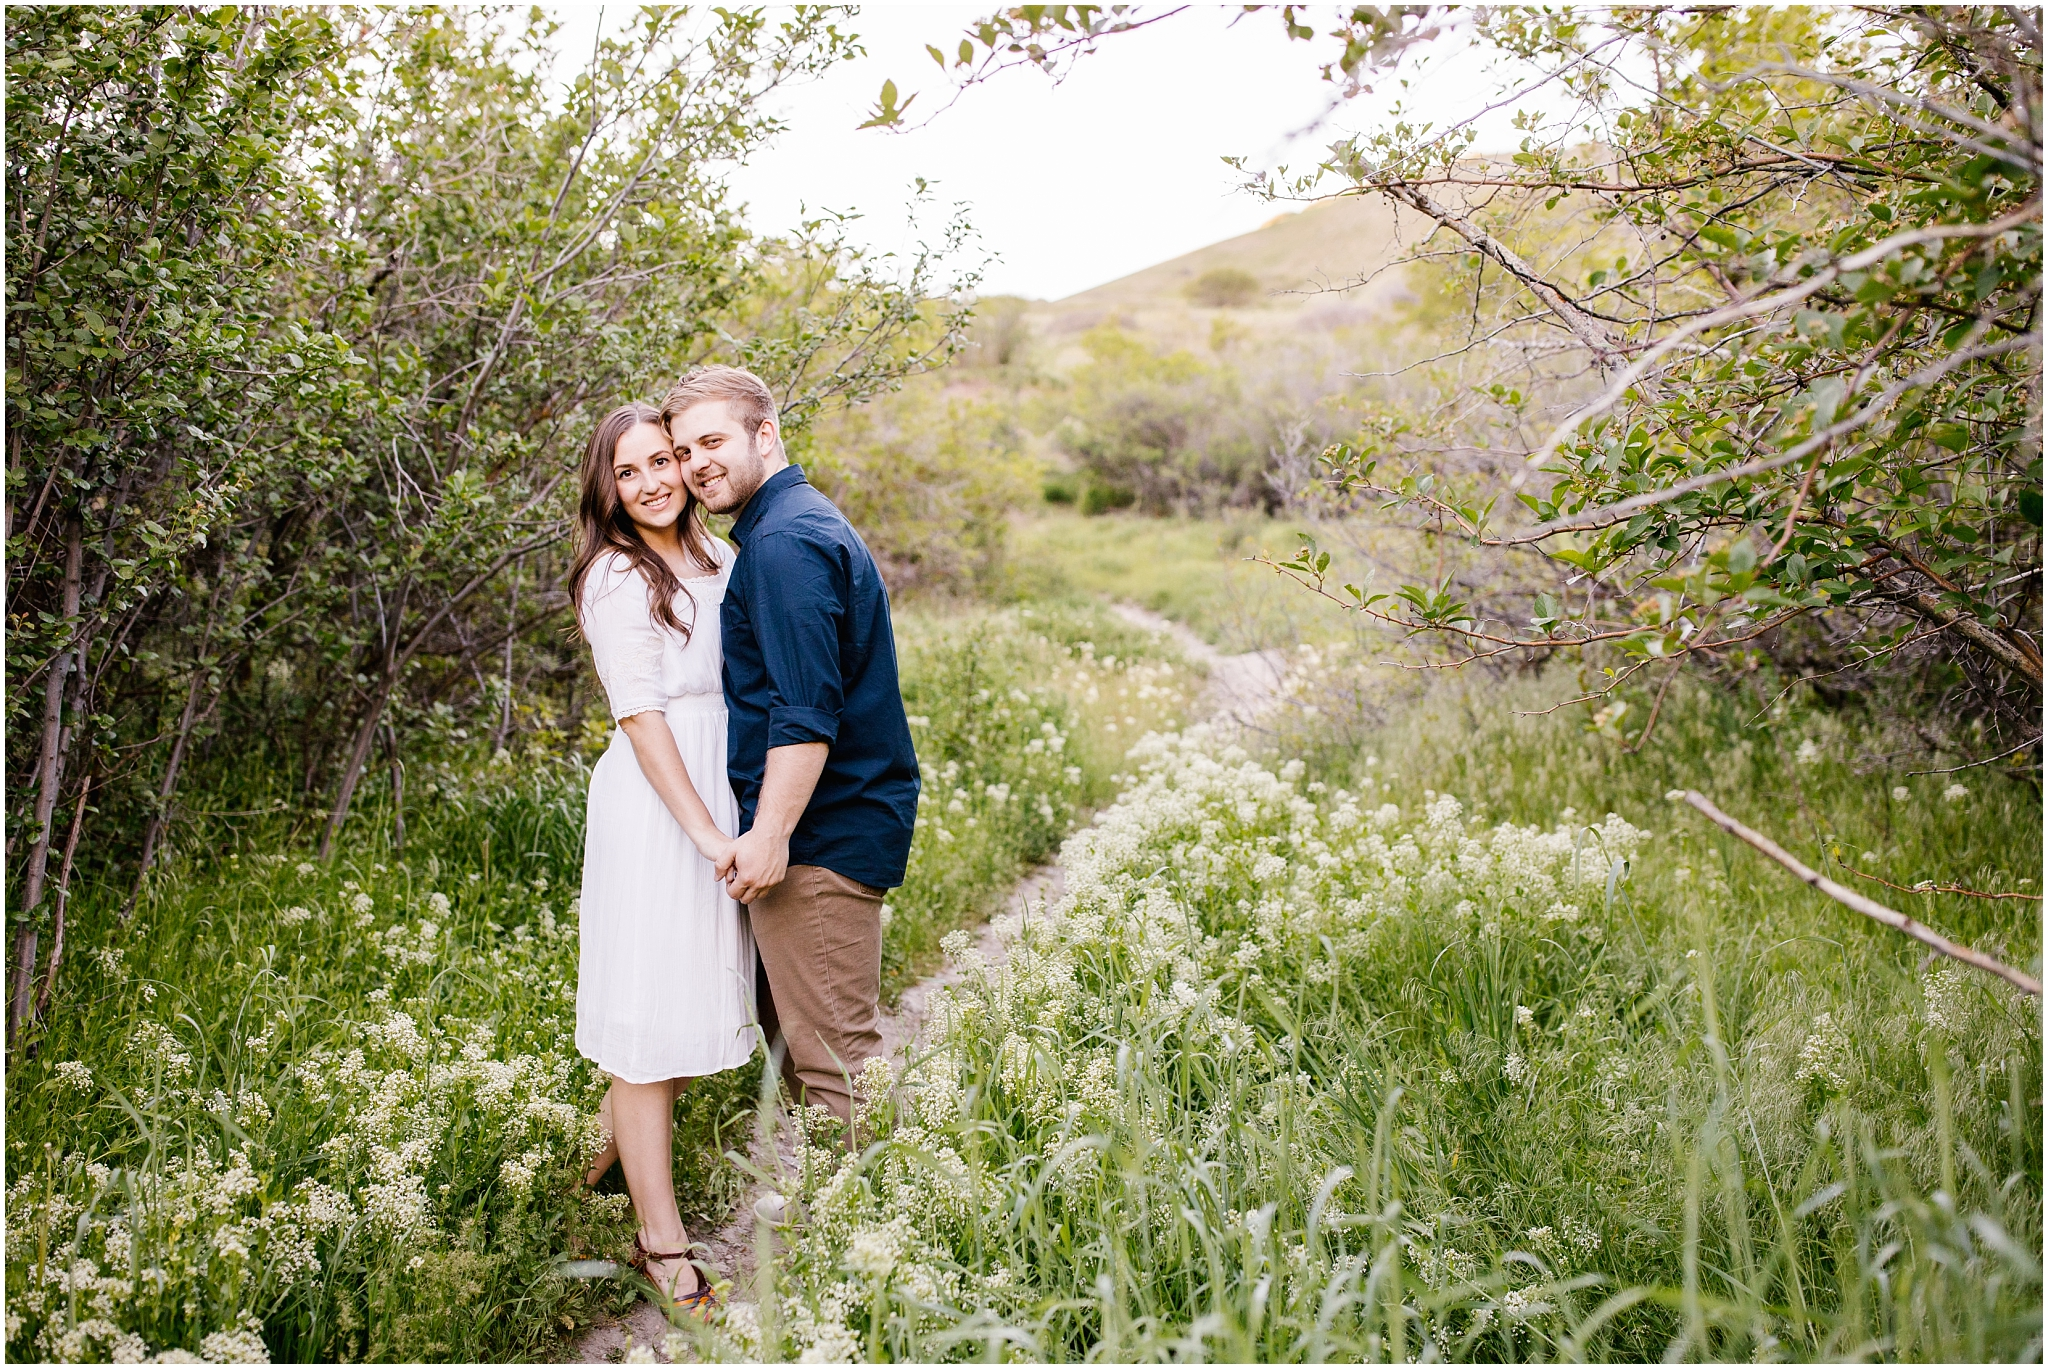 Lizzie-B-Imagery-Utah-Wedding-Photographer-Thanksgiving-Point-Payson-Temple_0165.jpg